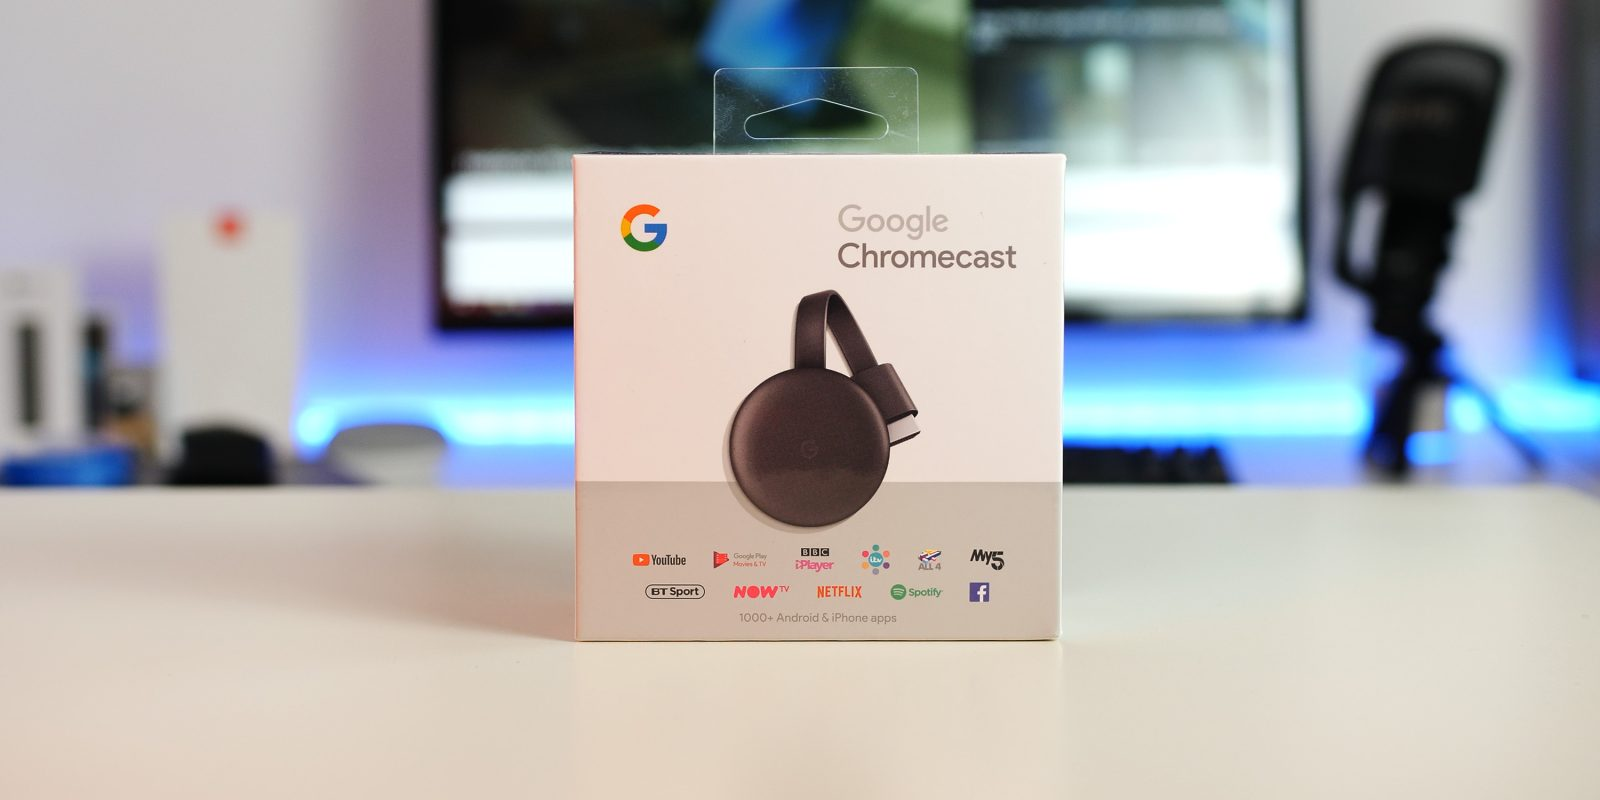 Review: The new Google Chromecast is much the same w/ some